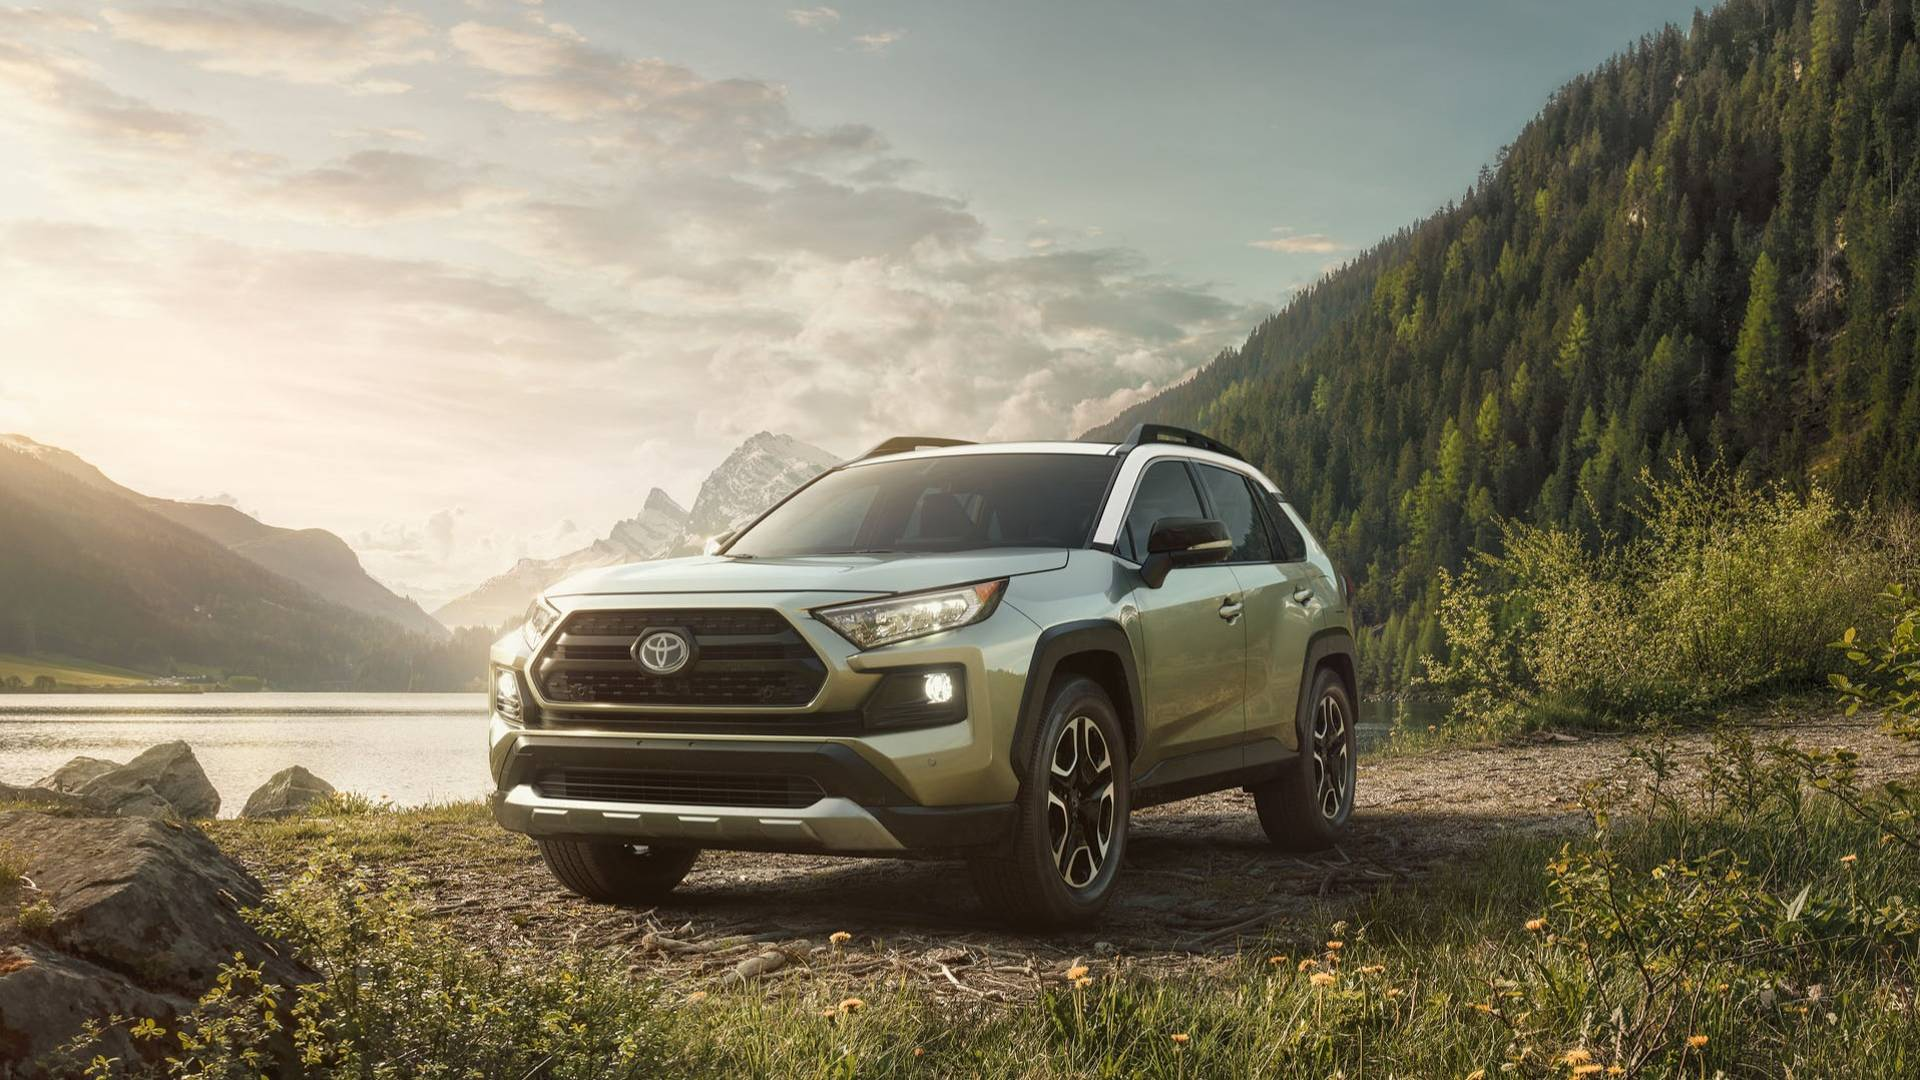 The All-New 2019 Toyota RAV4 Debuts at the 2018 New York International Auto Show 2